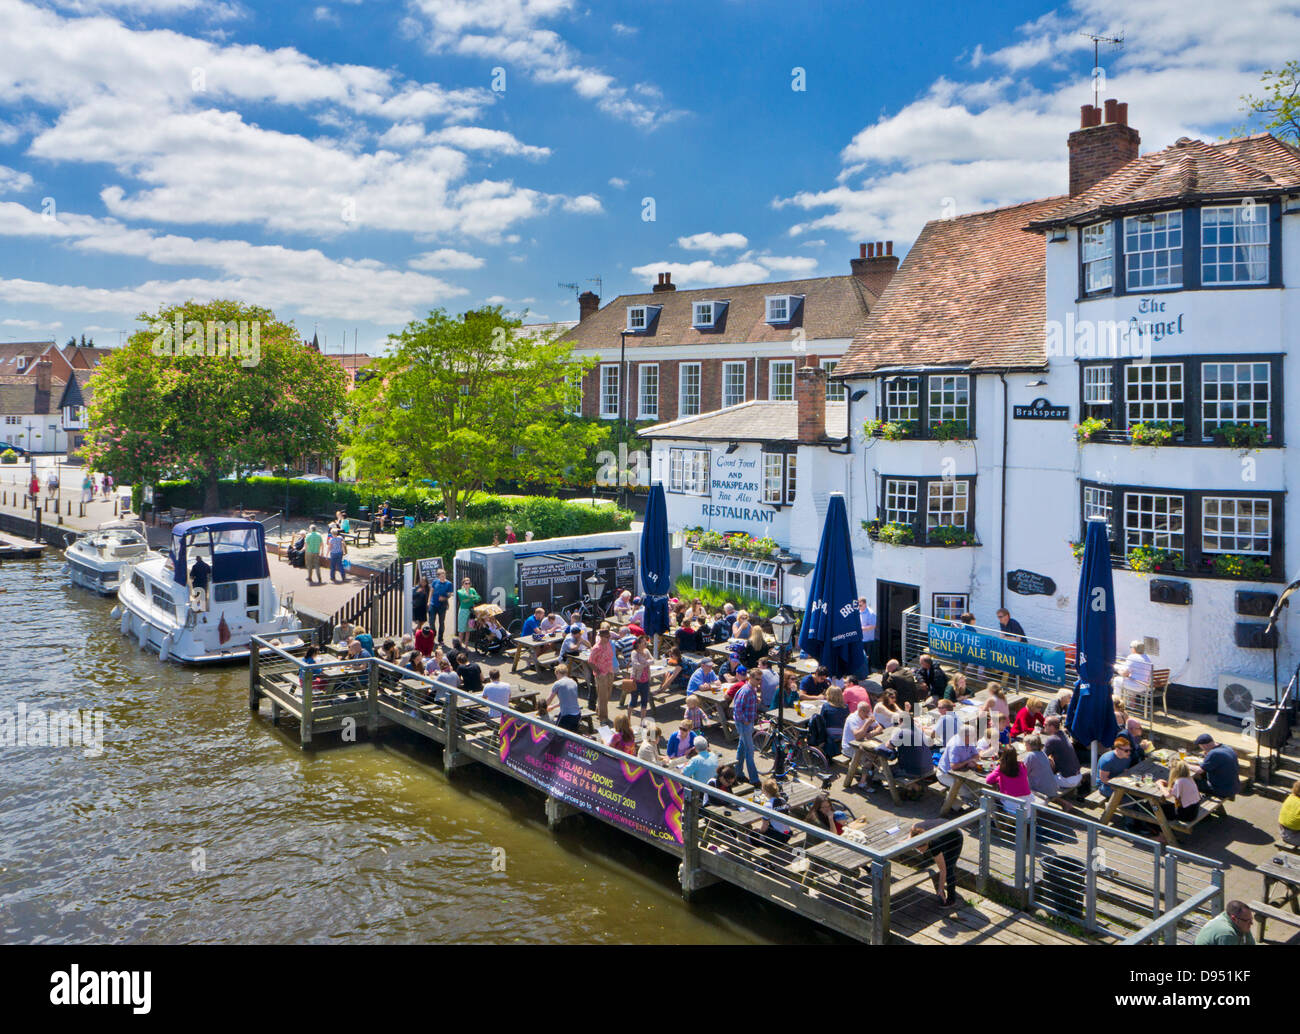 The Angel pub by Henley bridge over the River Thames Henley-on-Thames Oxfordshire England UK GB EU Europe - Stock Image